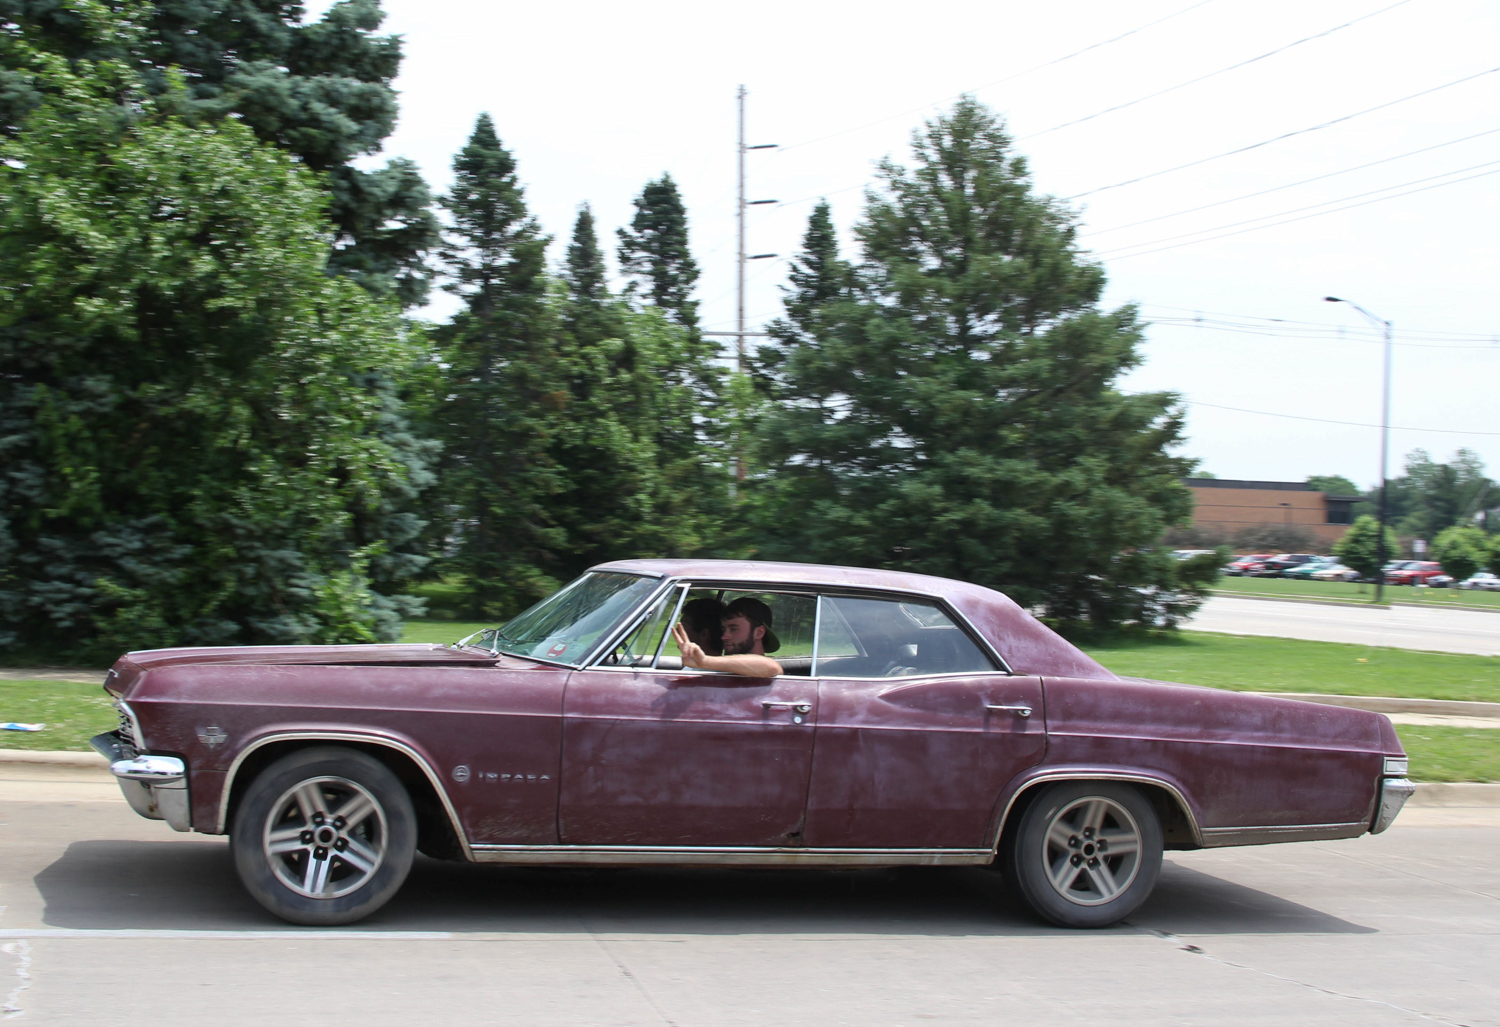 The four-door hardtop Impalas had such a long list of options they started to crowd into Cadillac territory. This Impala is equipped with a 327-cubic-inch small-block and Turbo 350 transmission.